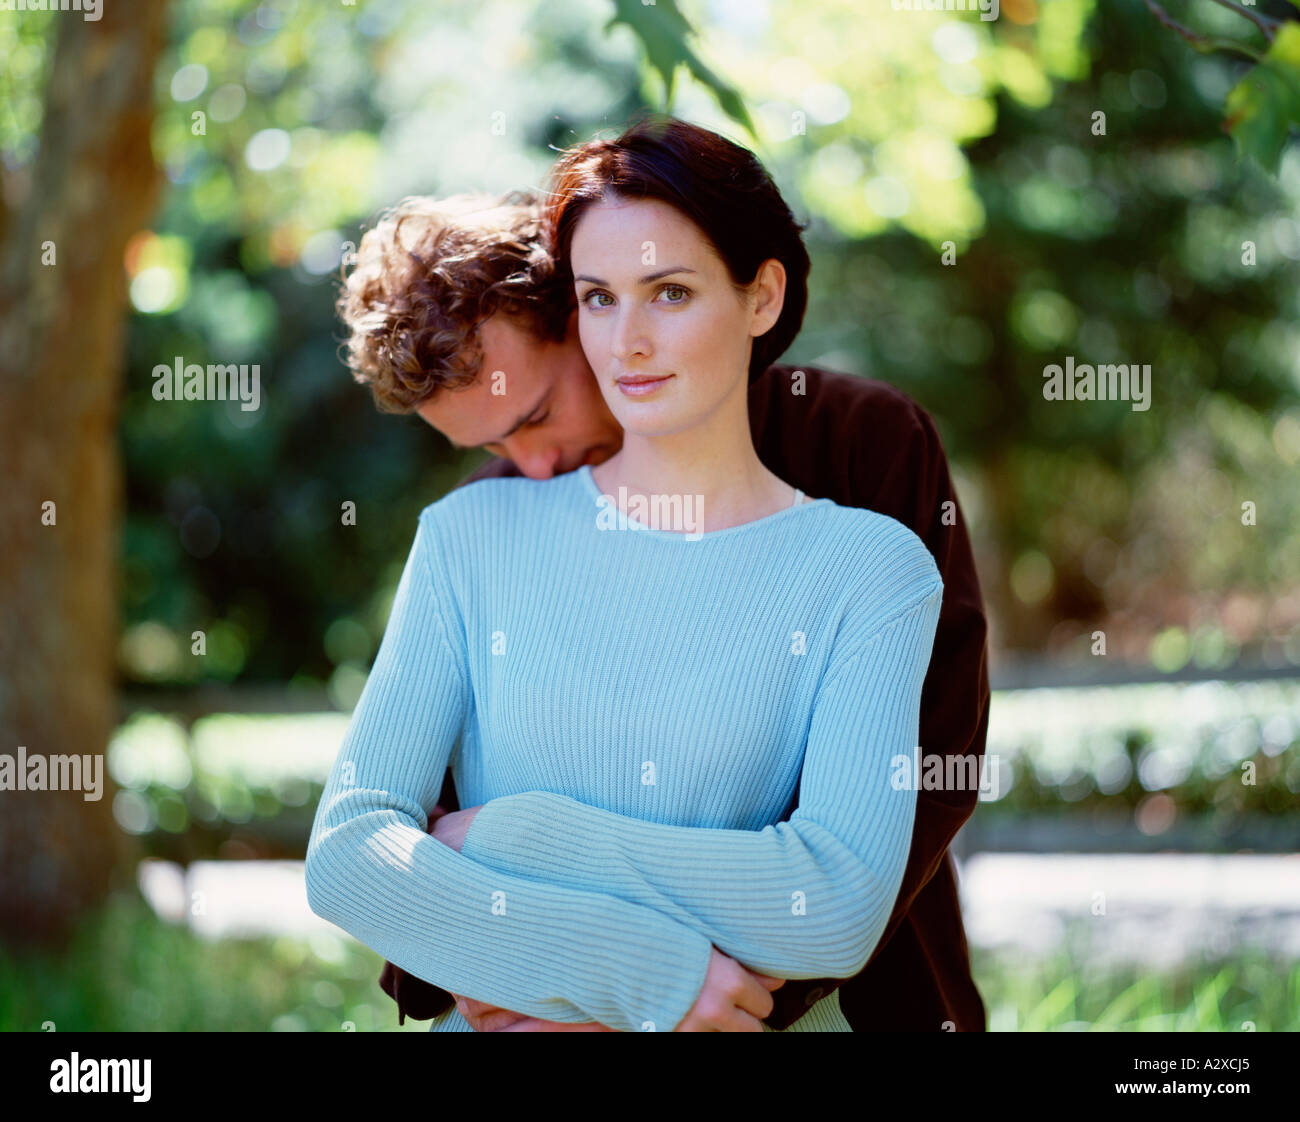 Young couple outdoors in the park. - Stock Image